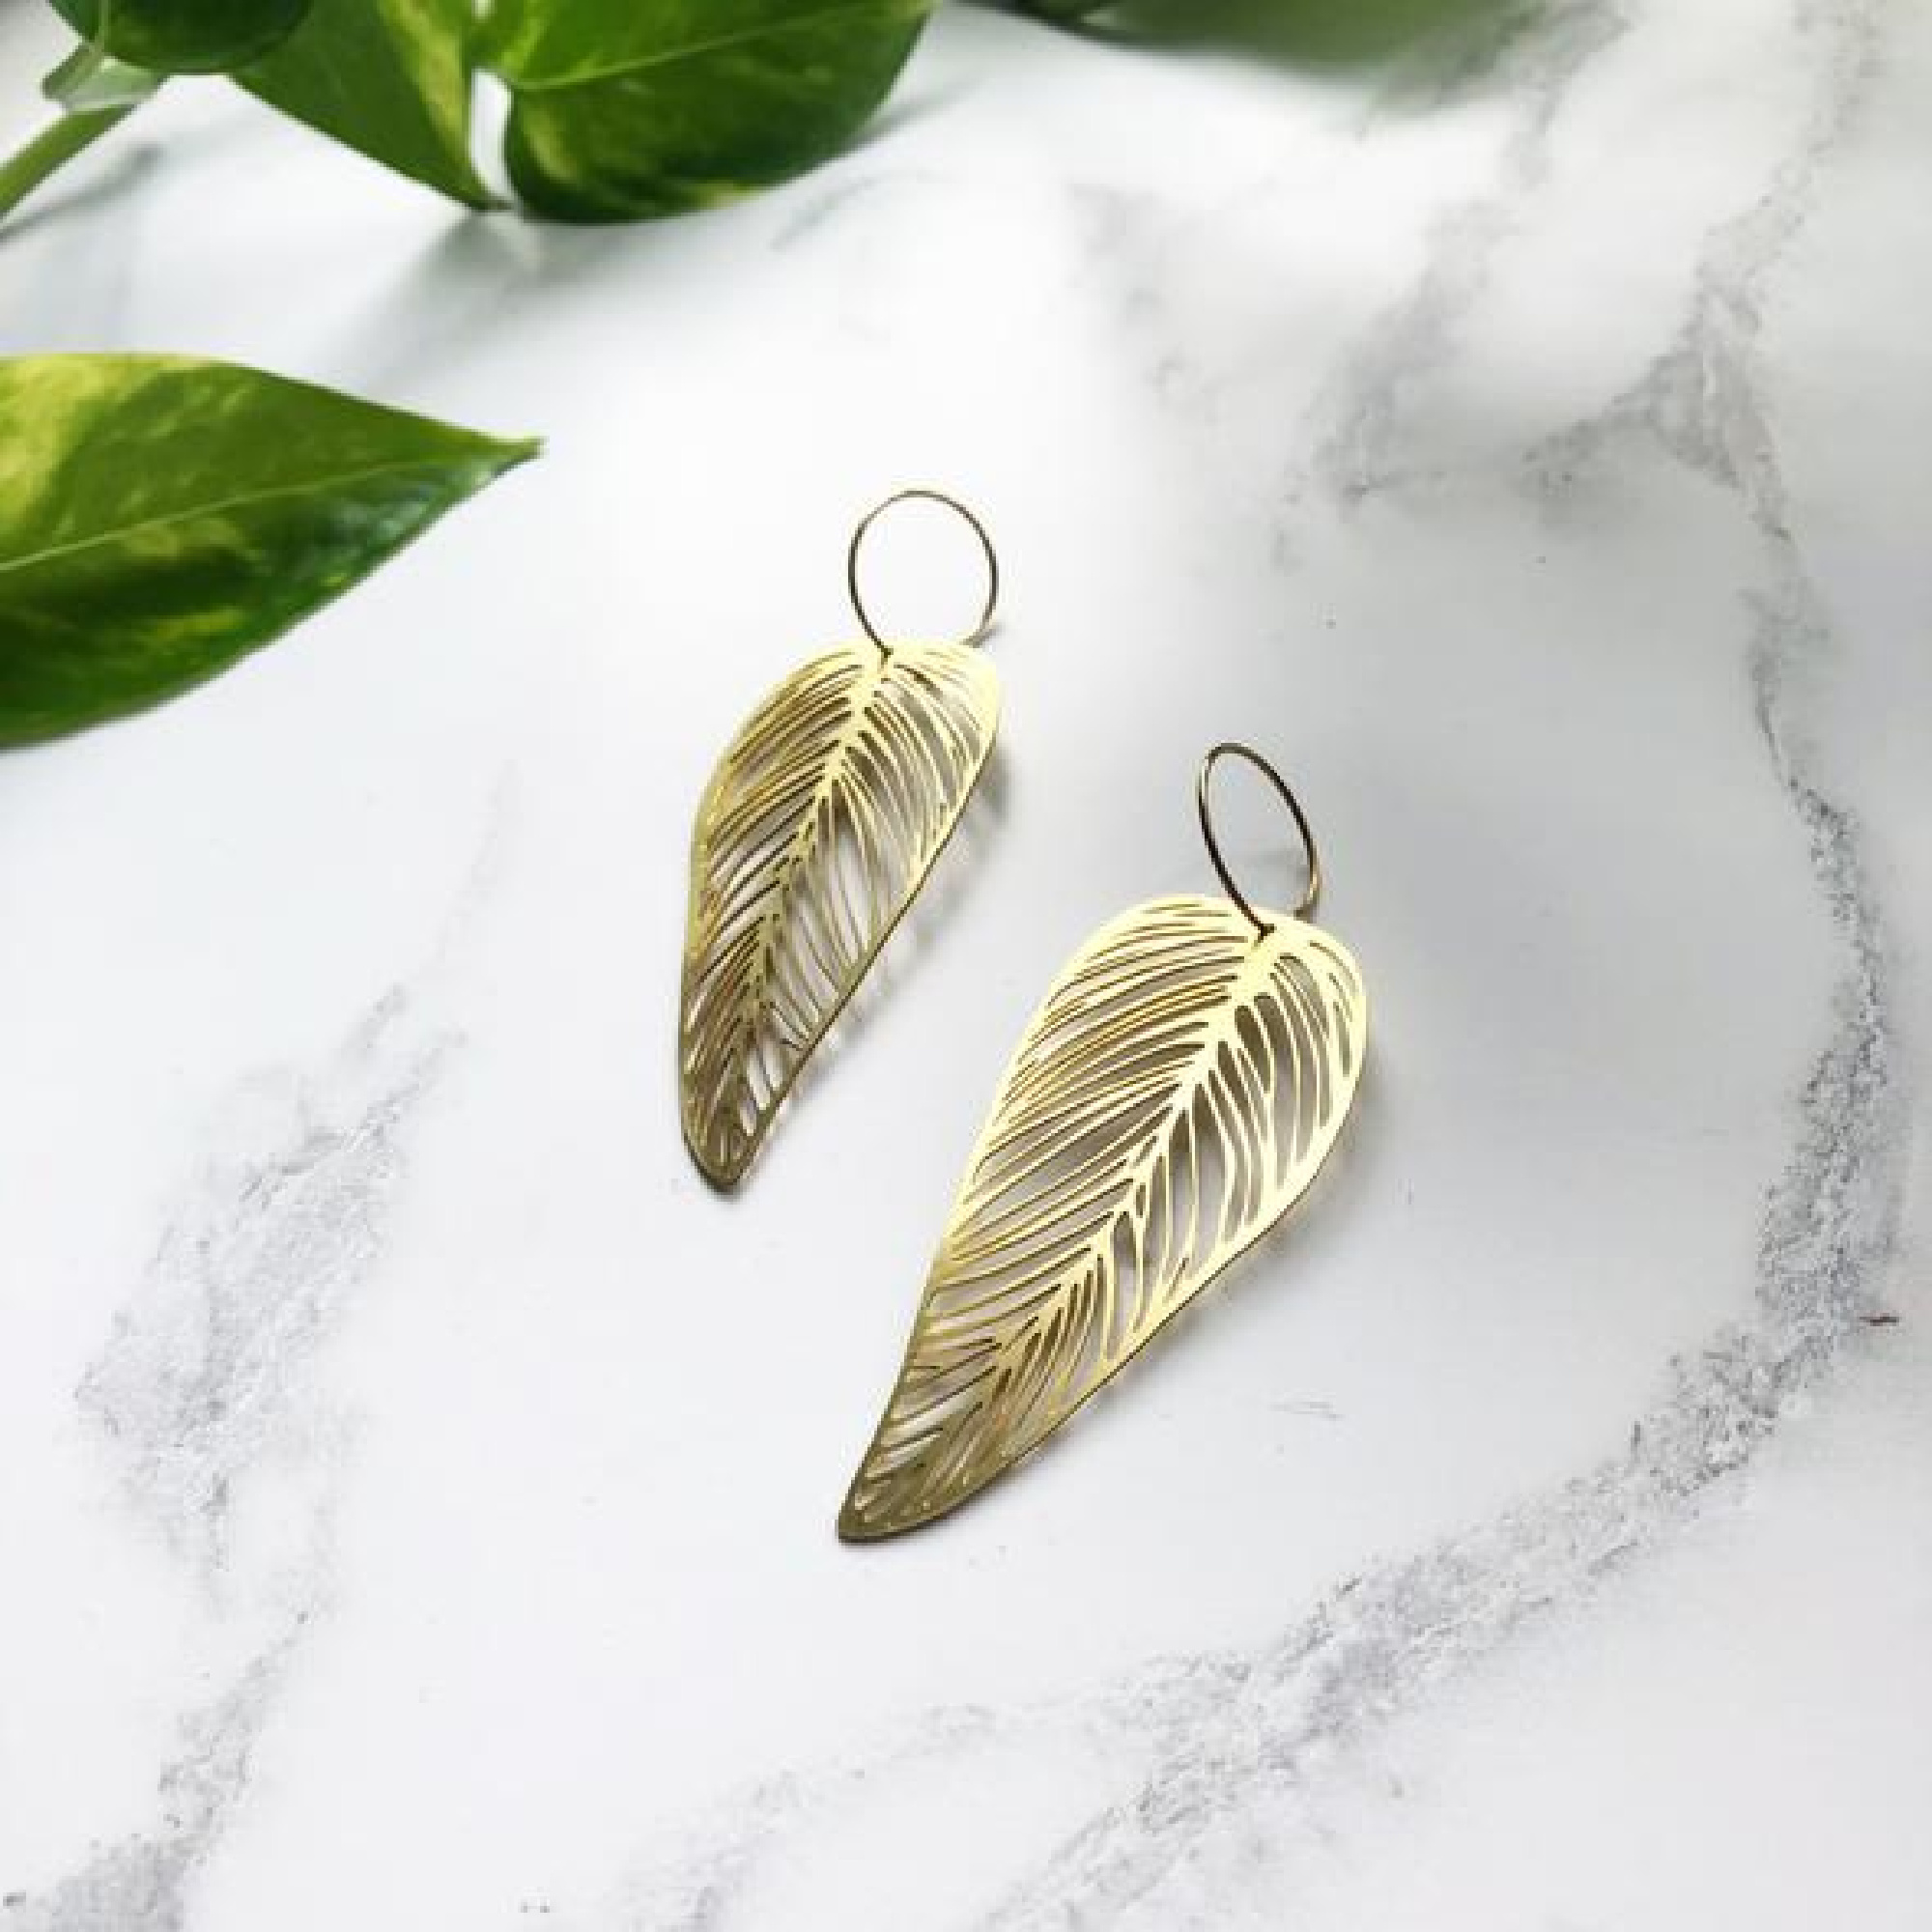 Leaf Earrings by Mica Peet